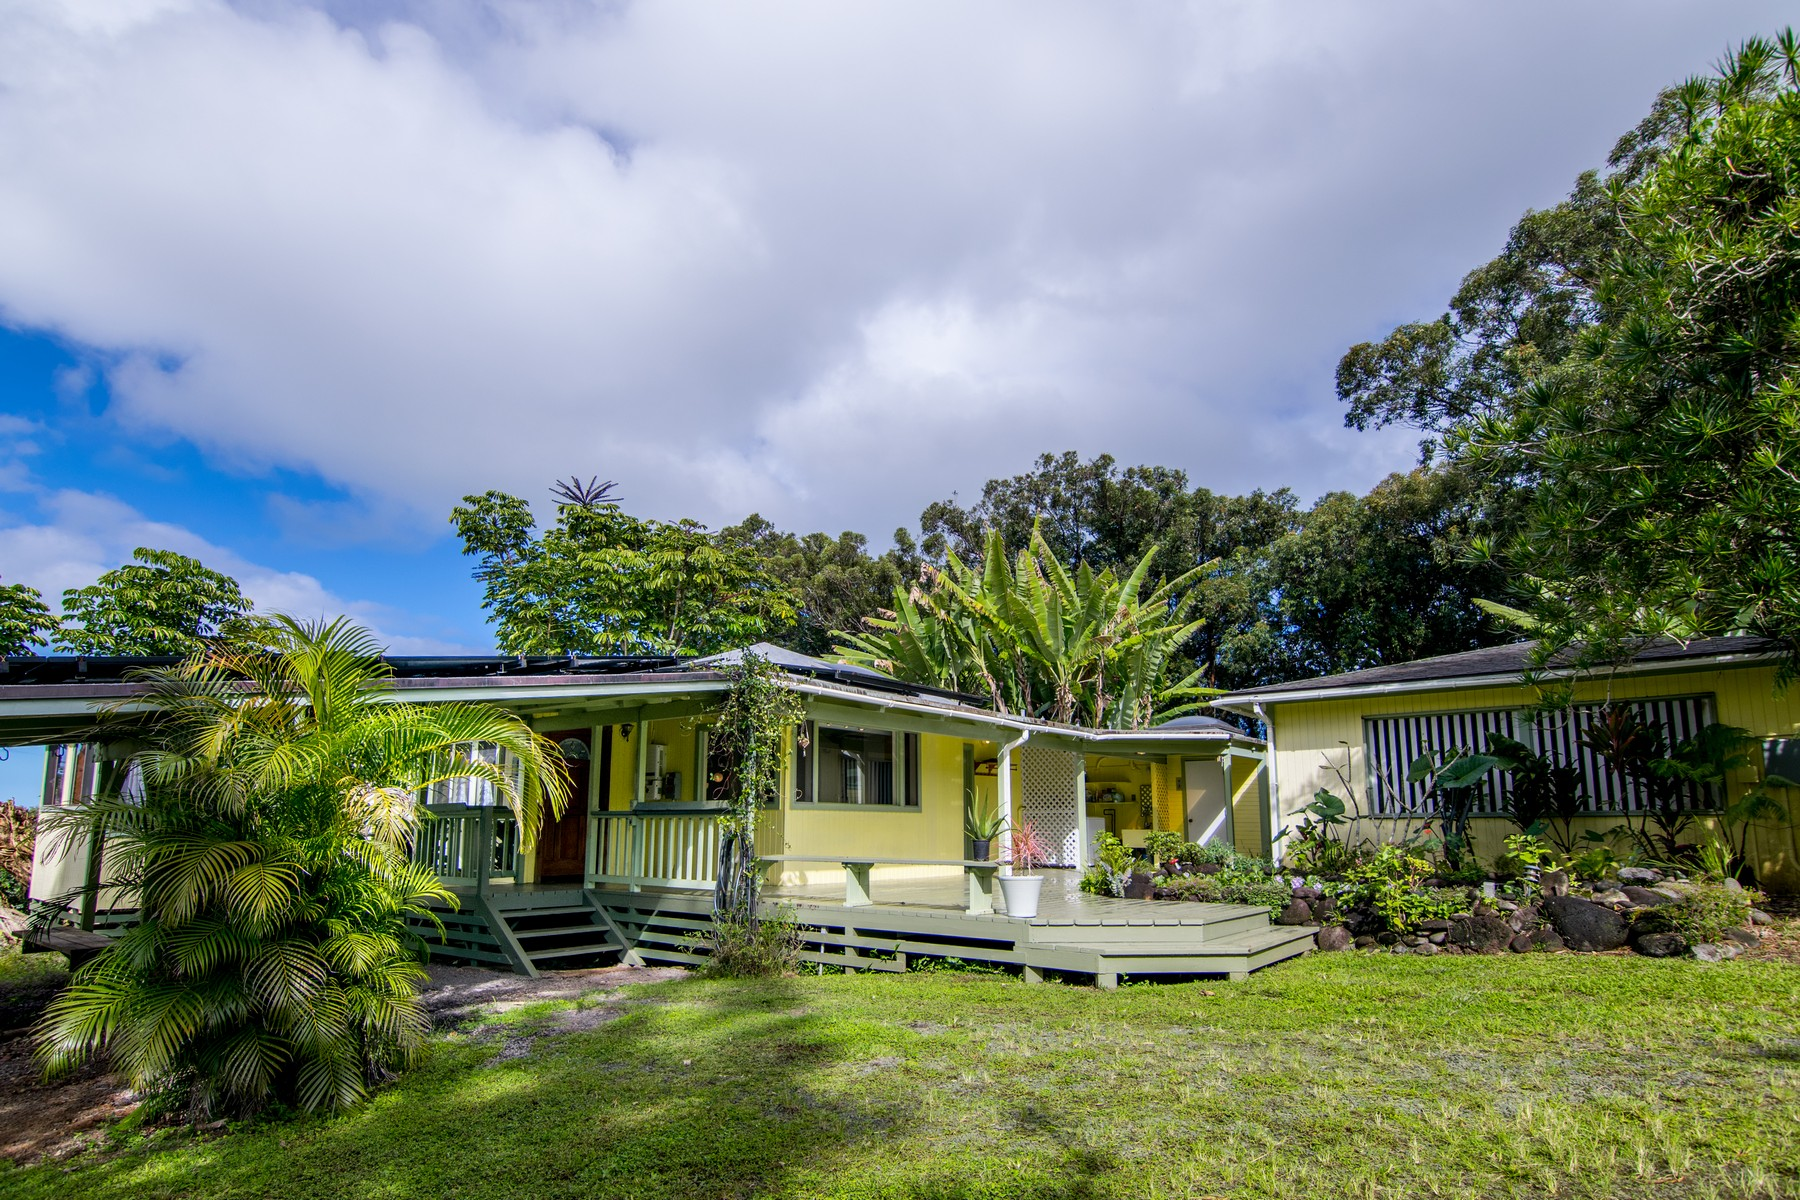 獨棟家庭住宅 為 出售 在 Ocean View Haiku Home & Cottage with Orchard & PV on 2+Acres 2249 Kauhikoa Rd Haiku, 夏威夷 96708 美國